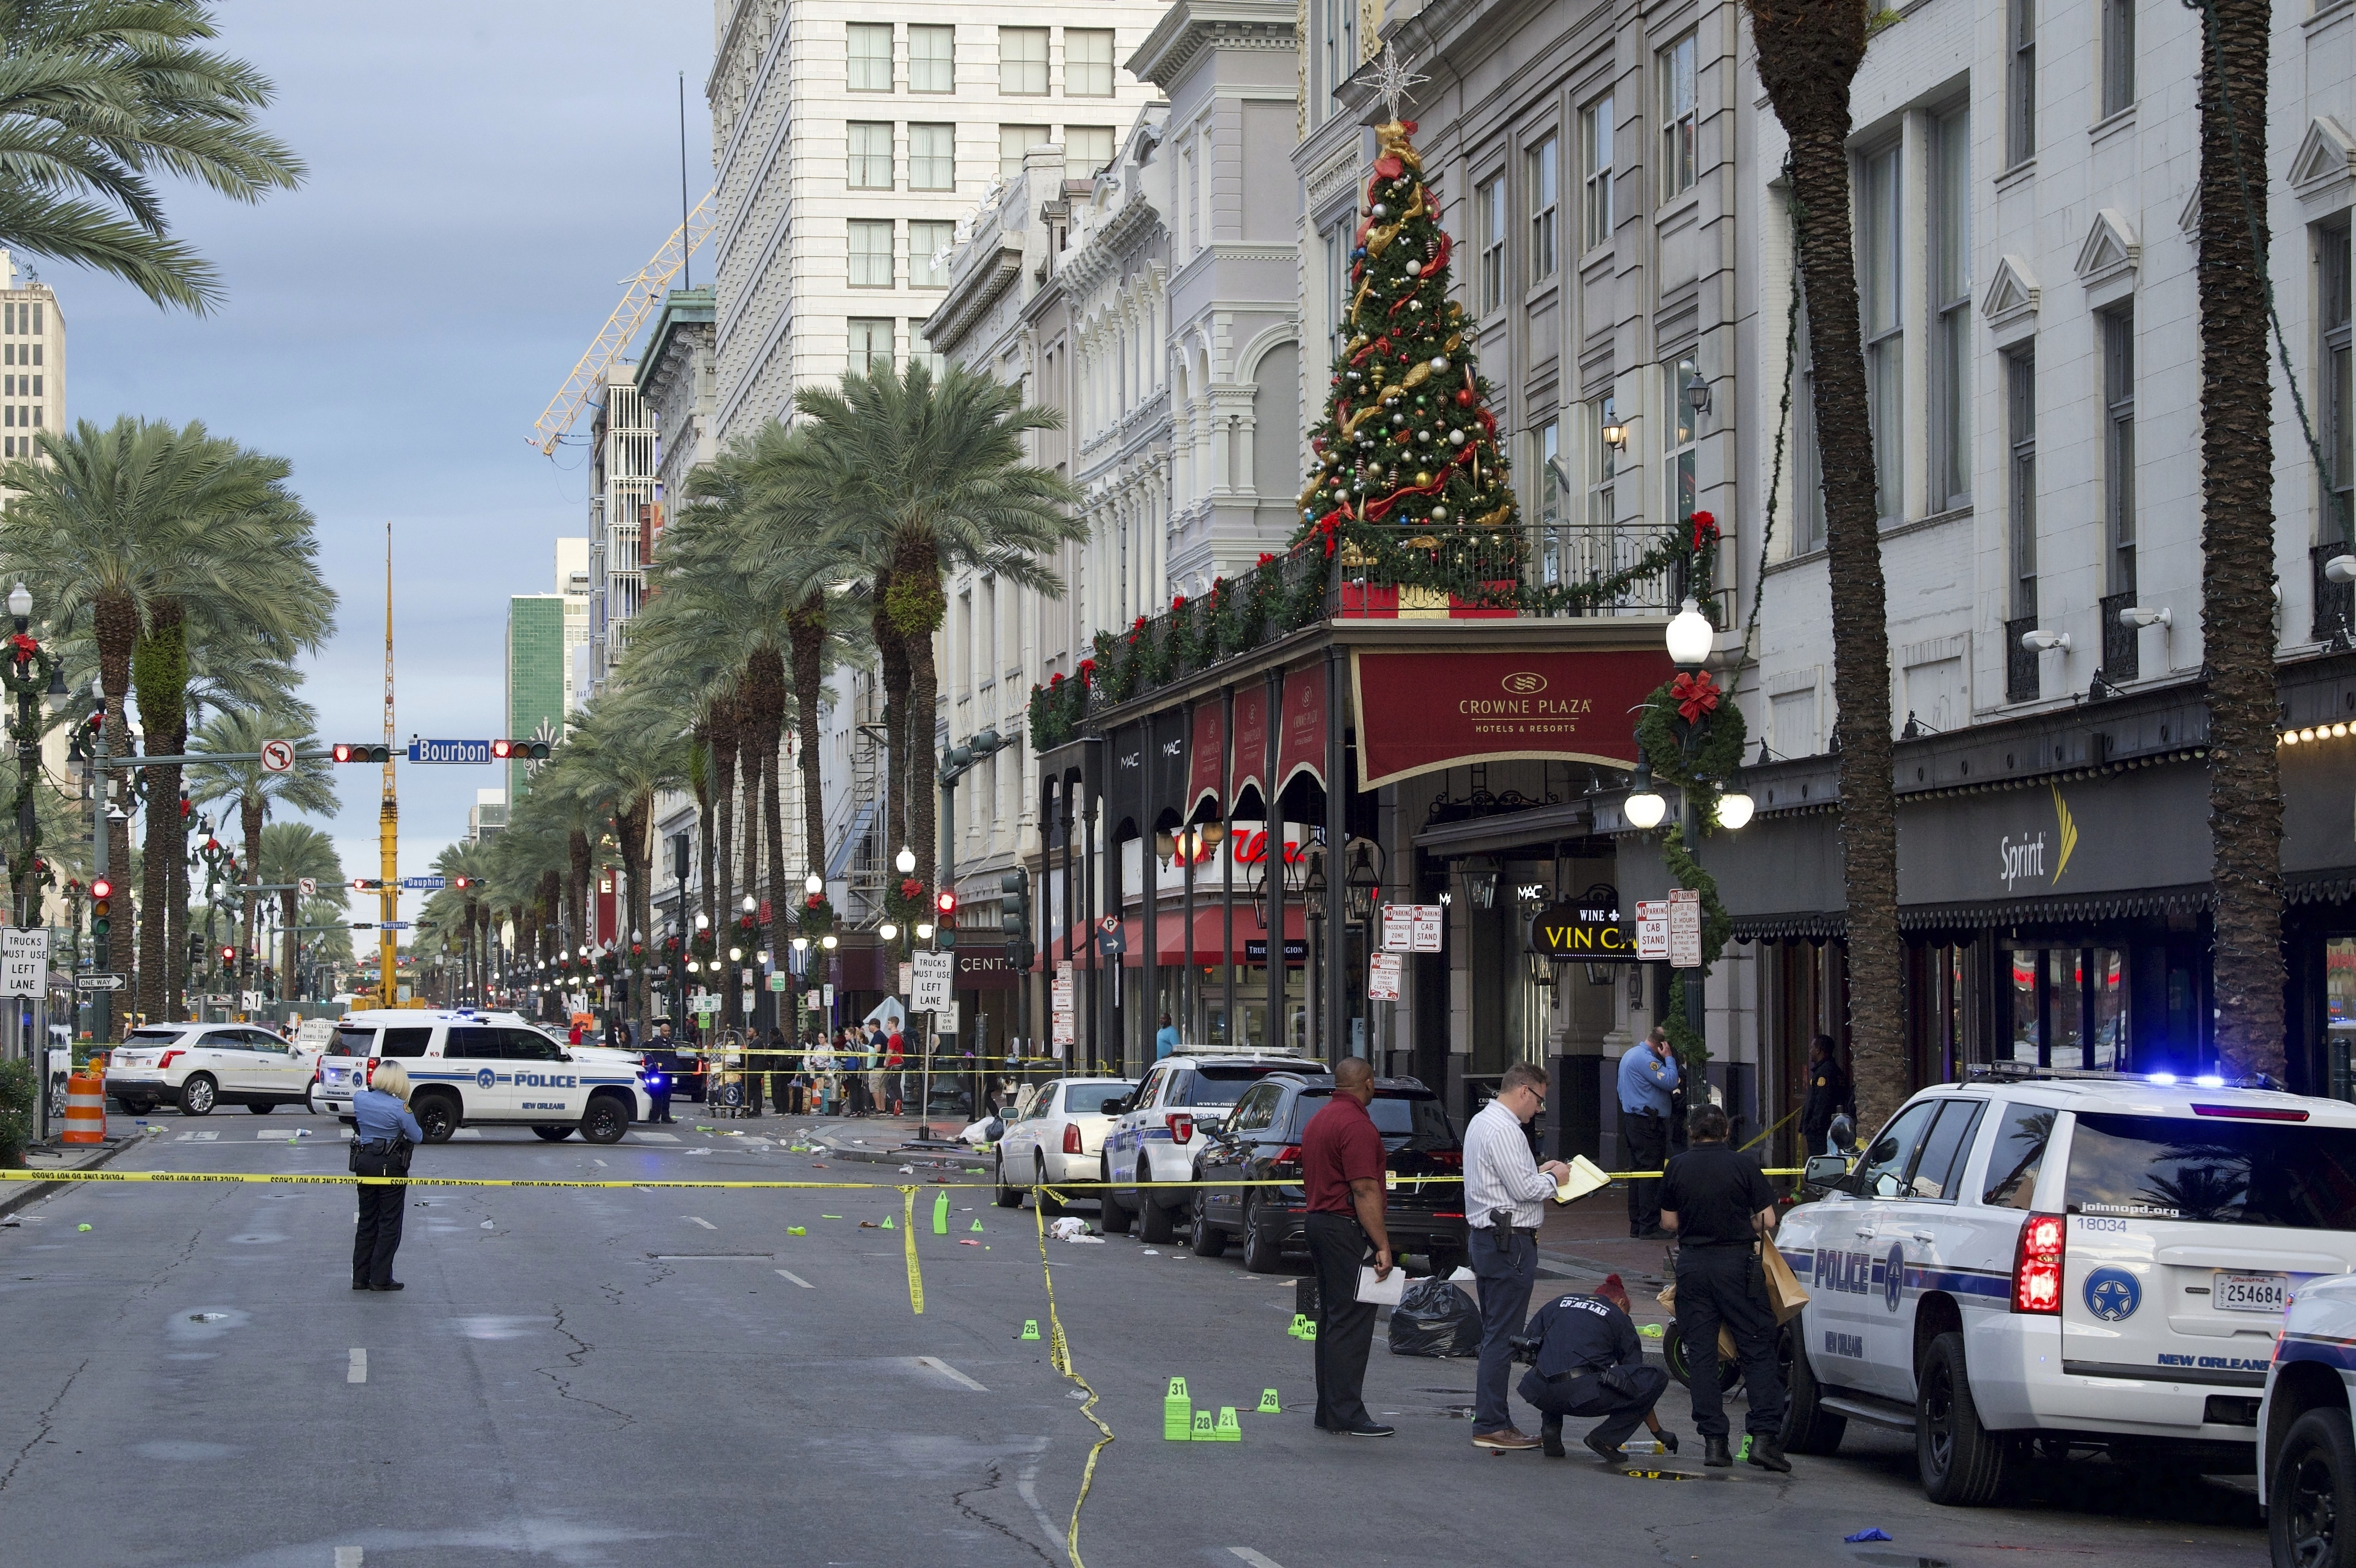 11 People Injured In New Orleans Shooting Time Temperature and humidity of air, pressure, speed and wind direction. https time com 5741996 new orleans shooting